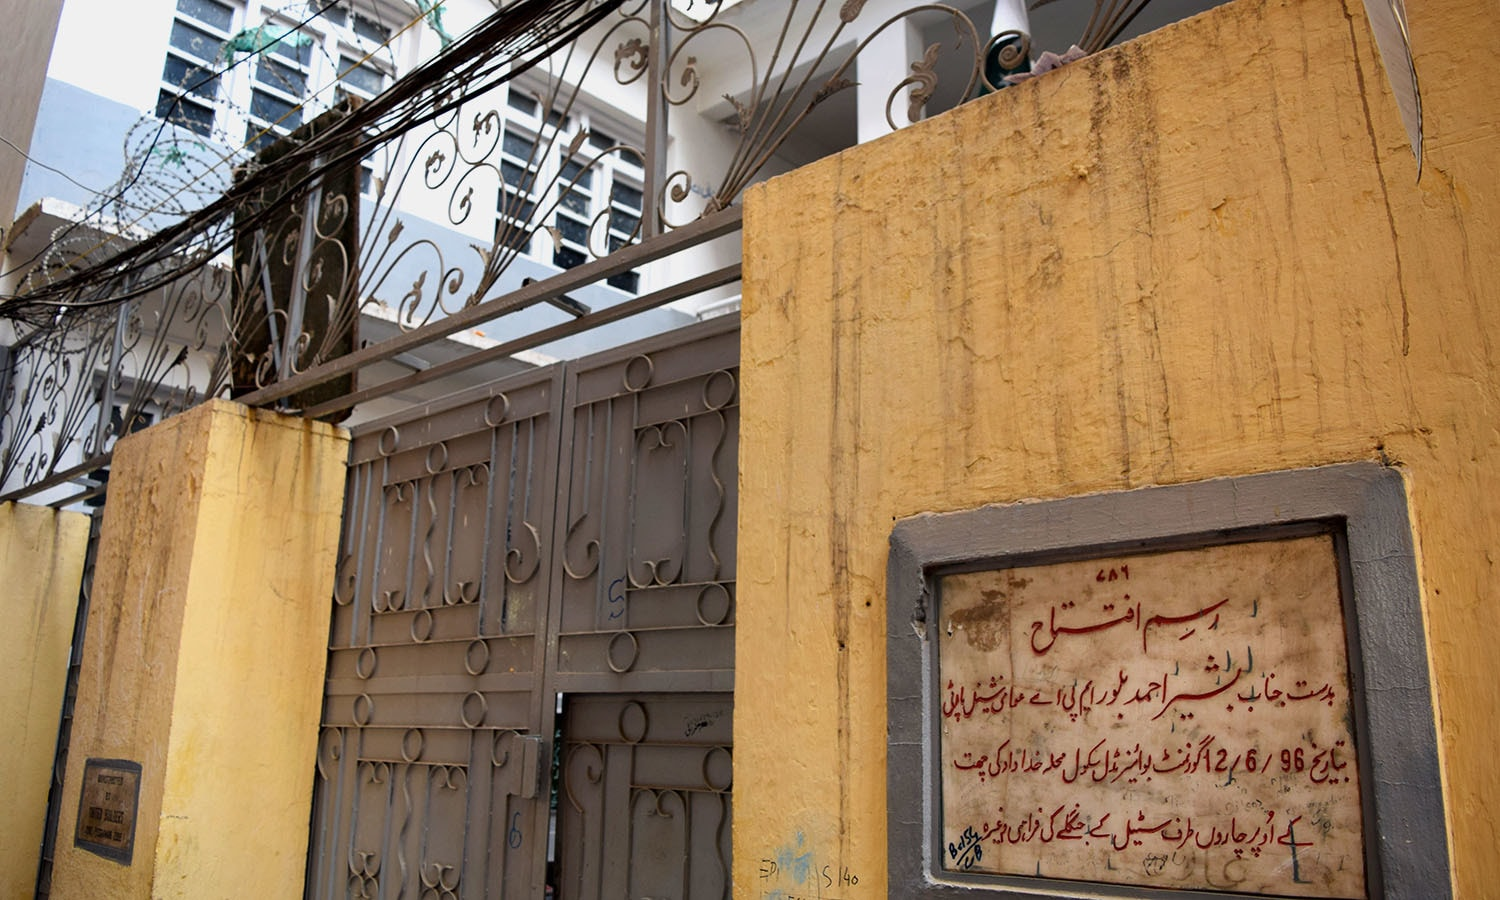 The 1890 Anjuman Himayat-i-Islam school, formerly attended by Dilip Kumar.